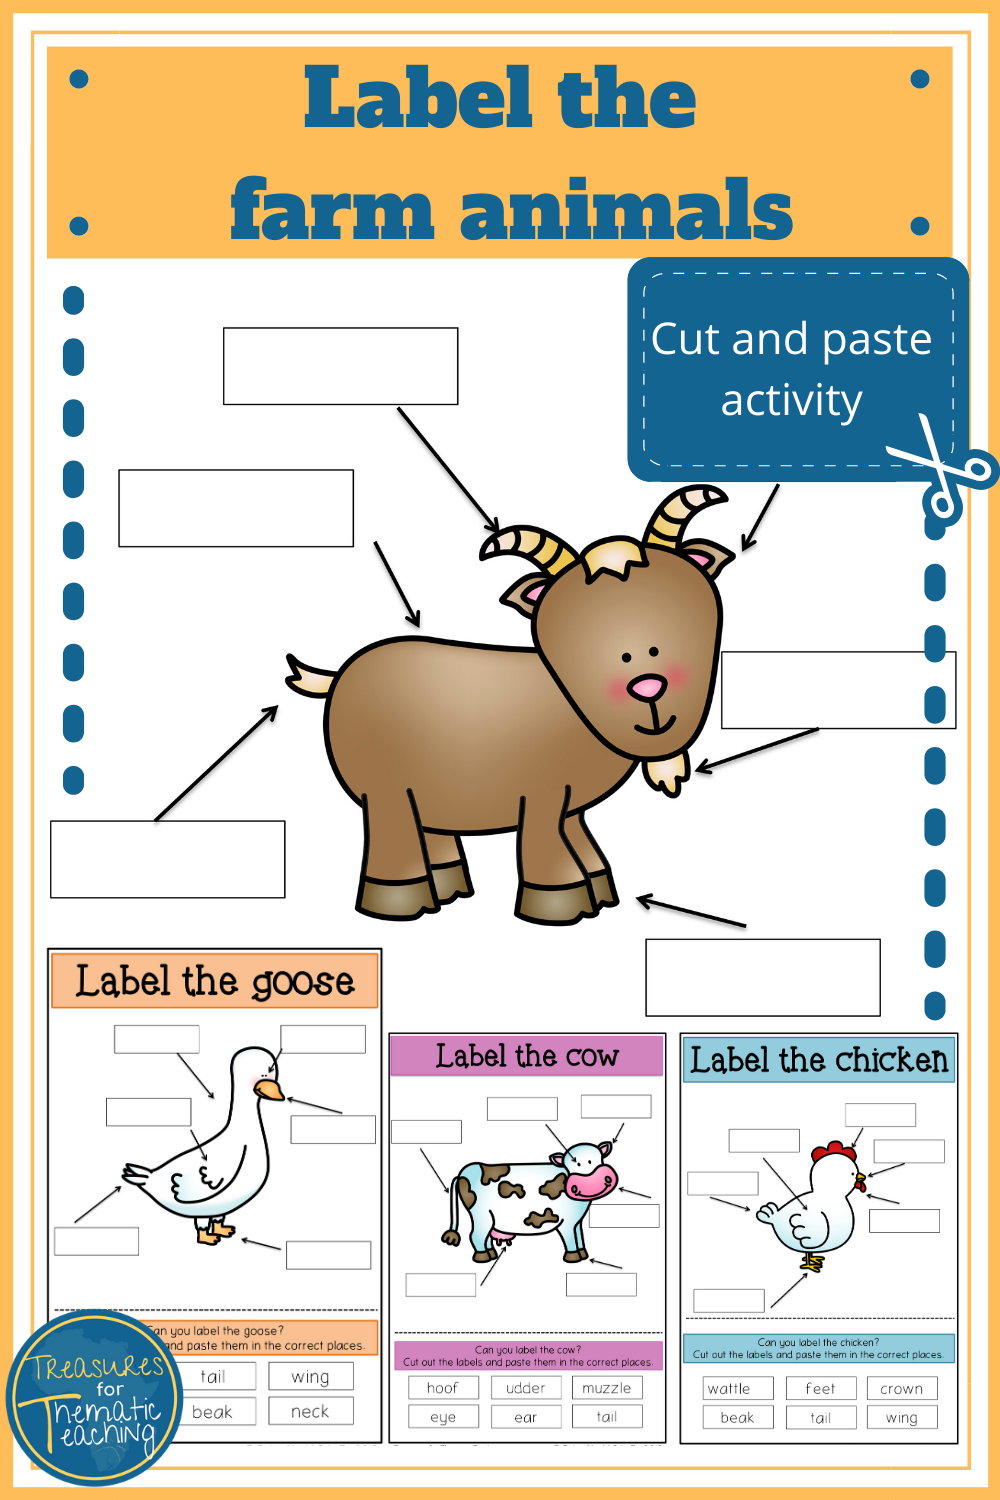 Farm animals labelling activity in 2020 (With images